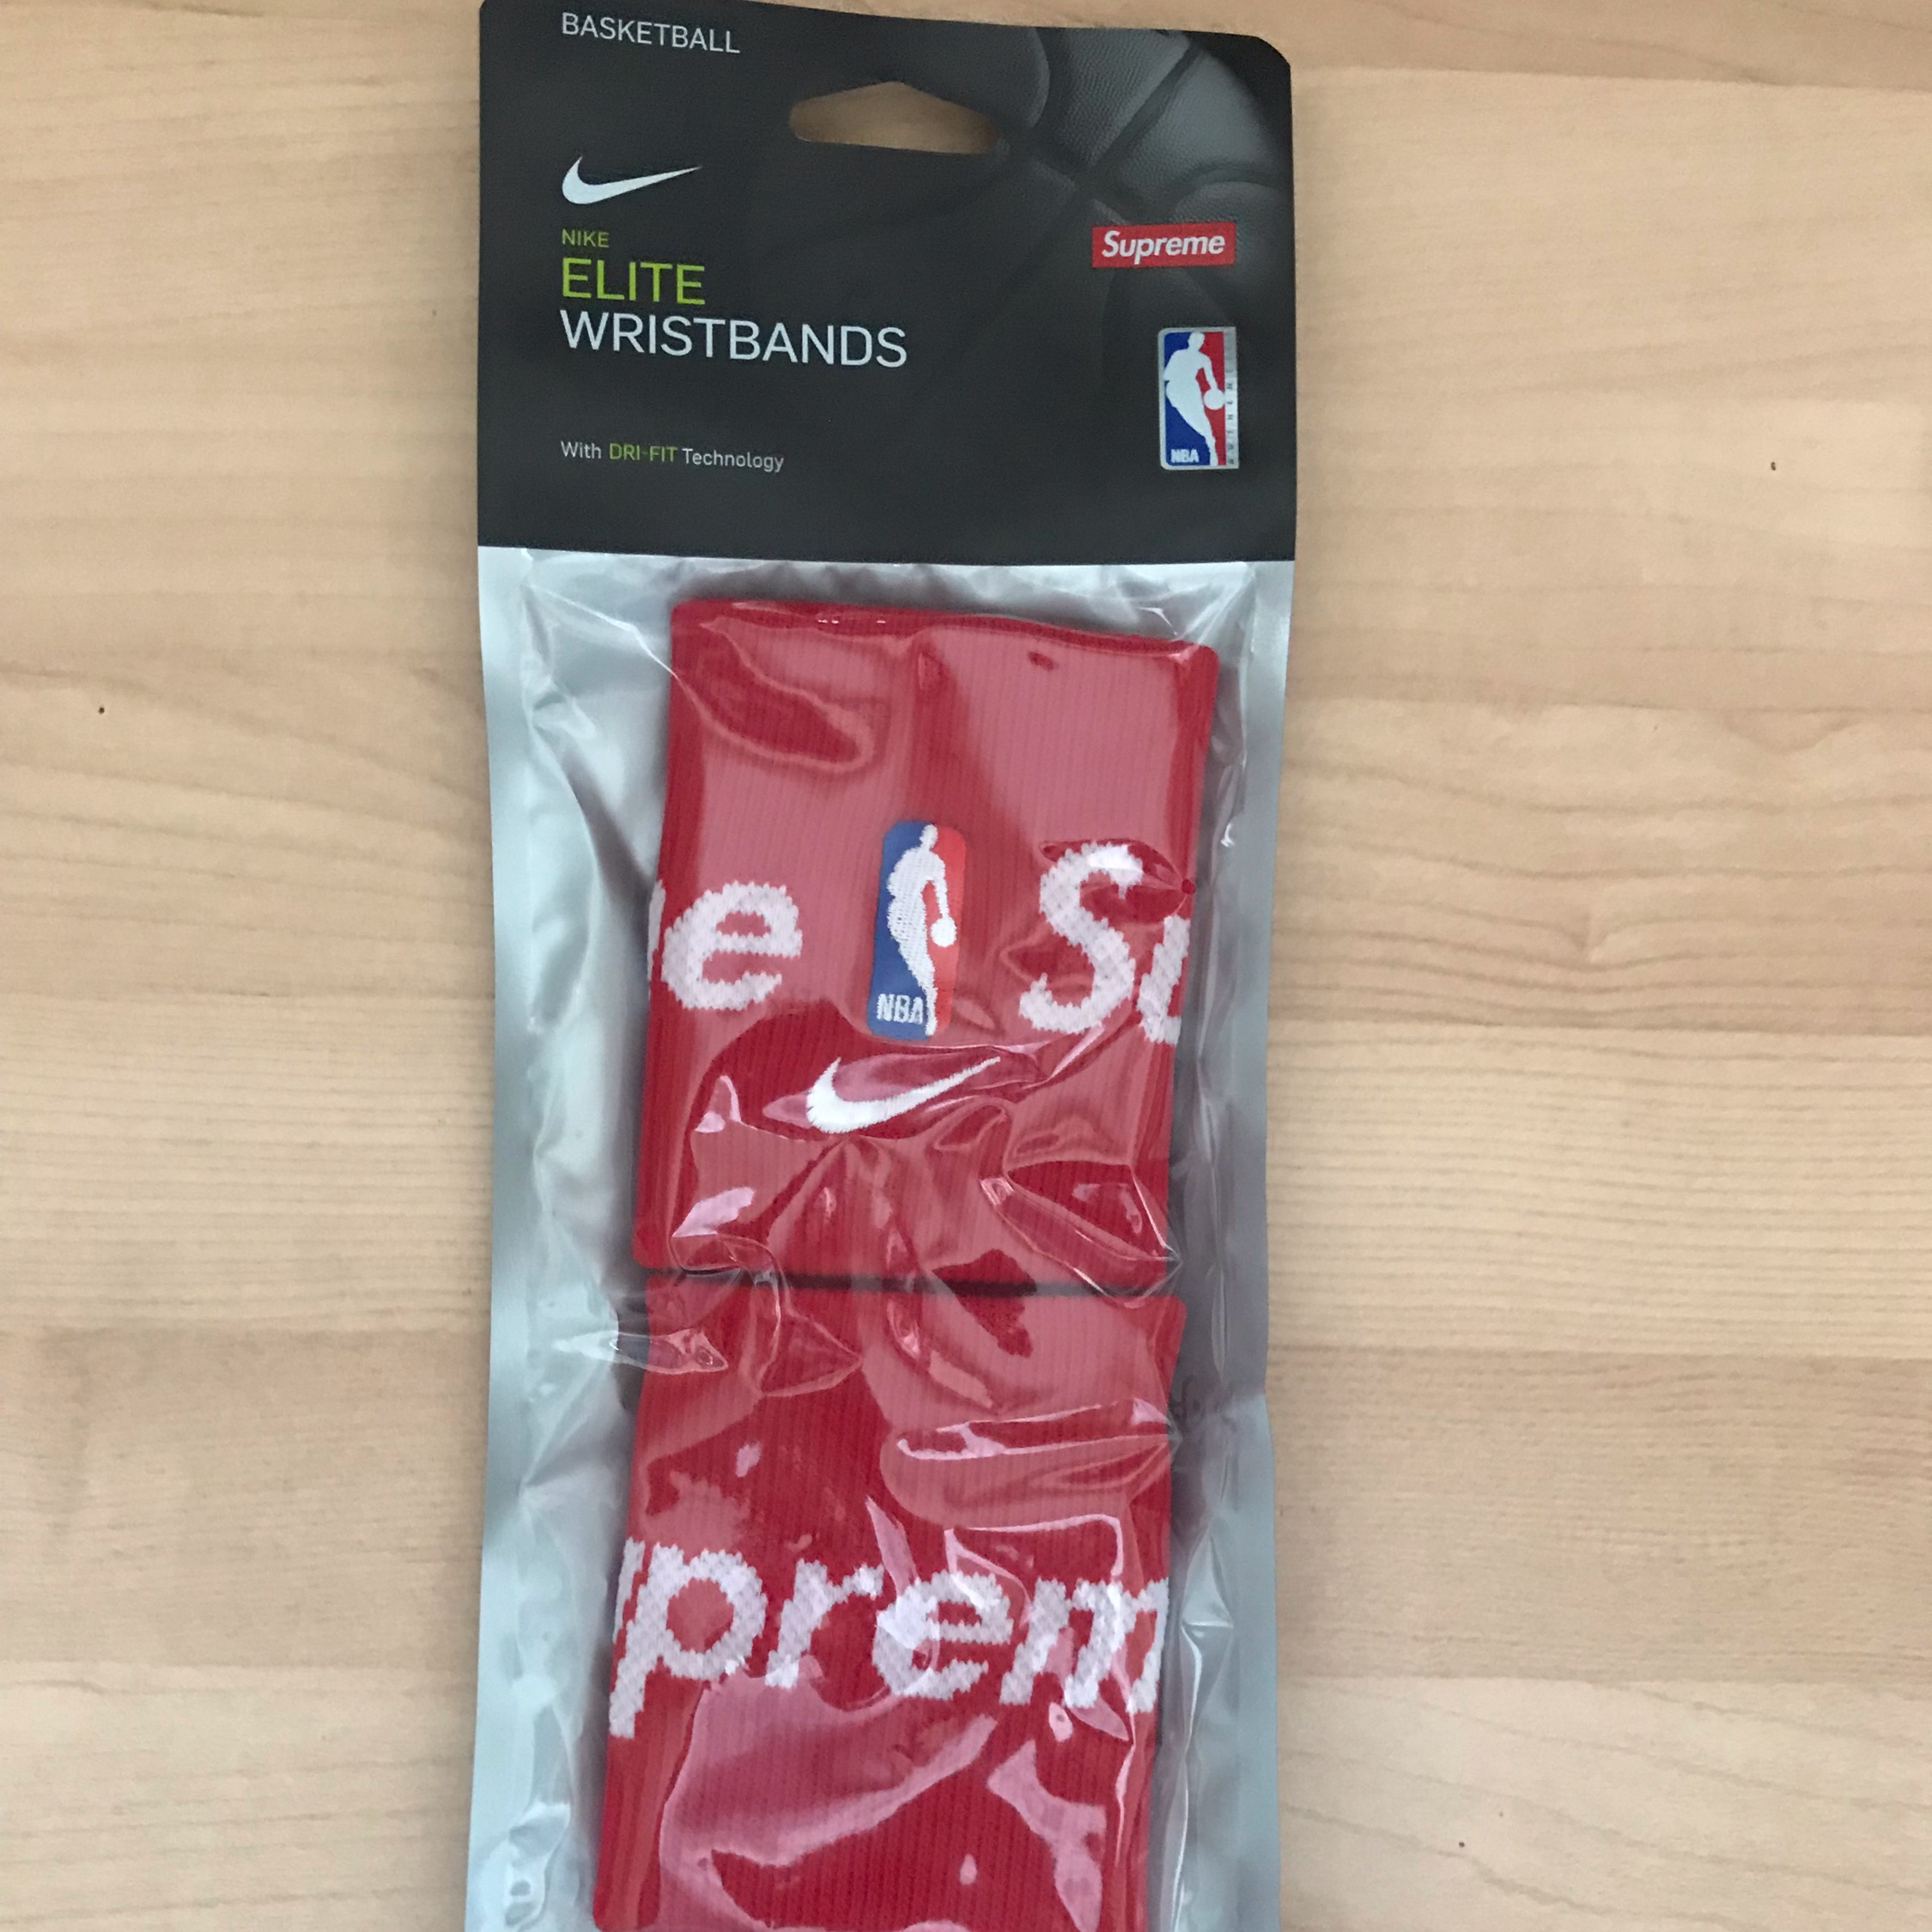 Ss19 Supreme X Nike X Nba Wristbands